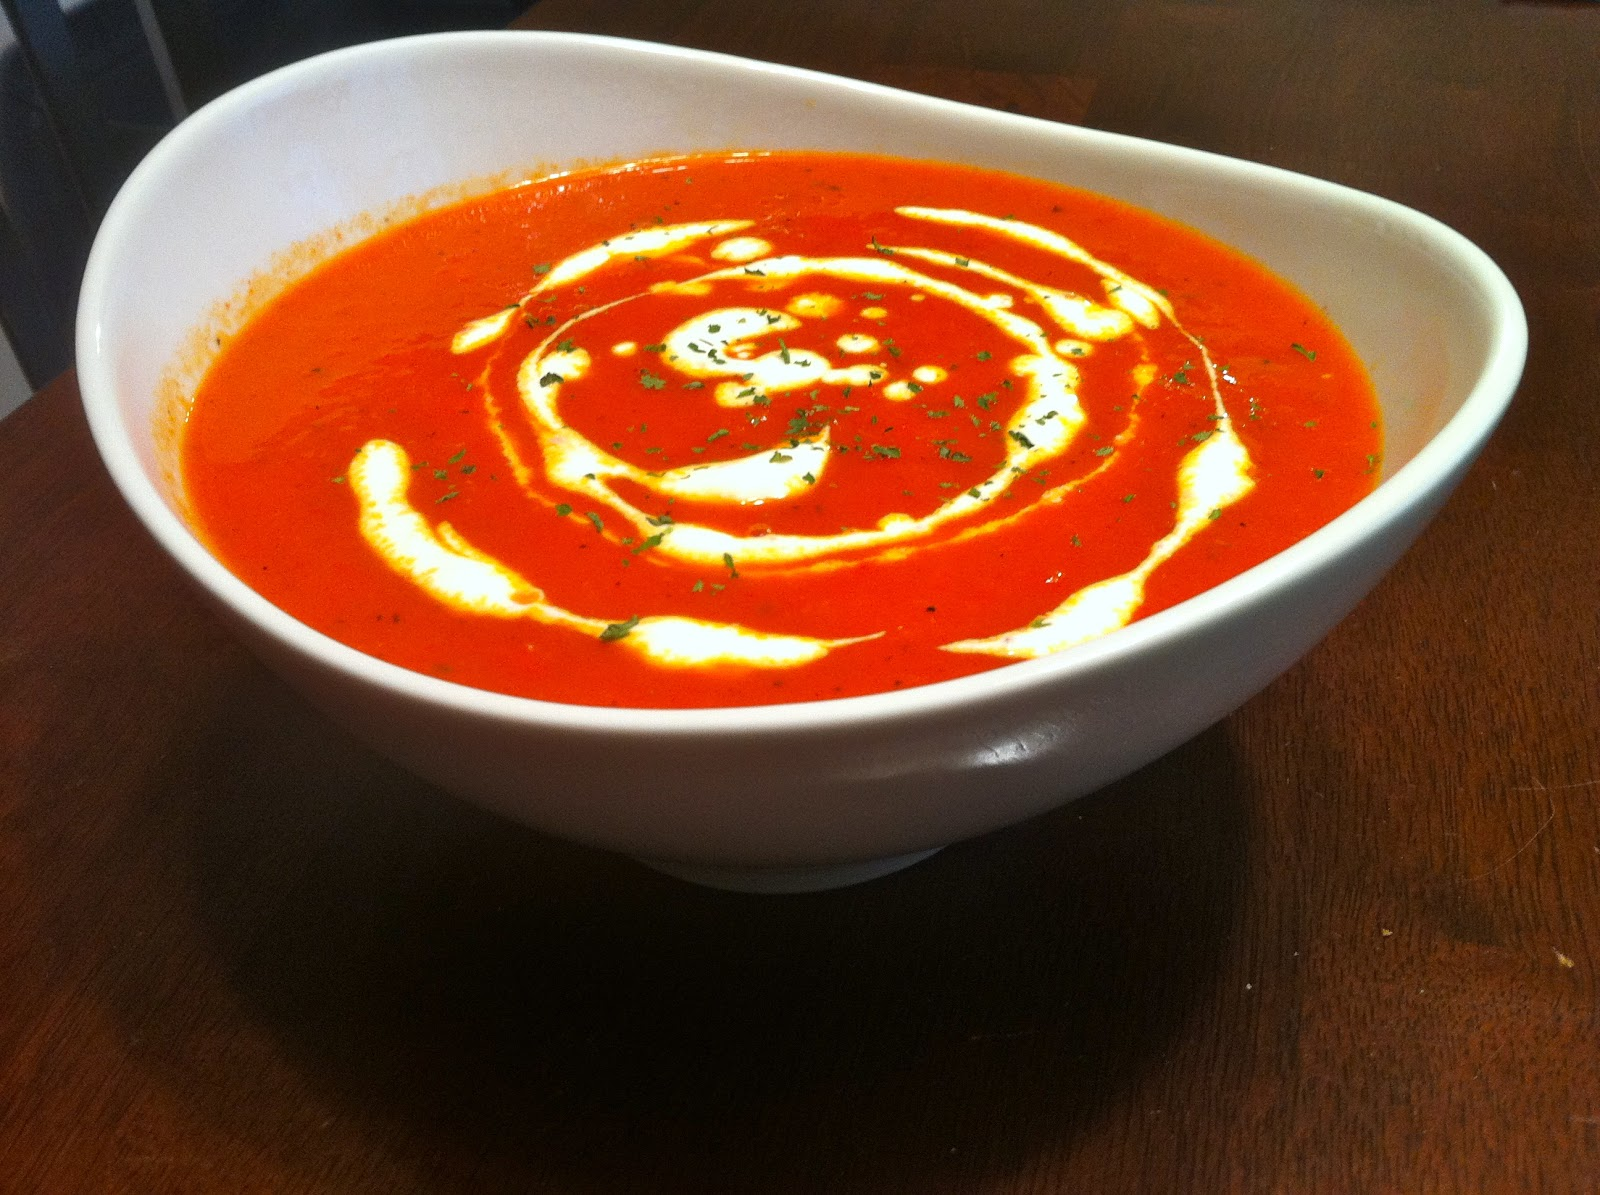 Only Soups: Roasted Red Pepper Soup